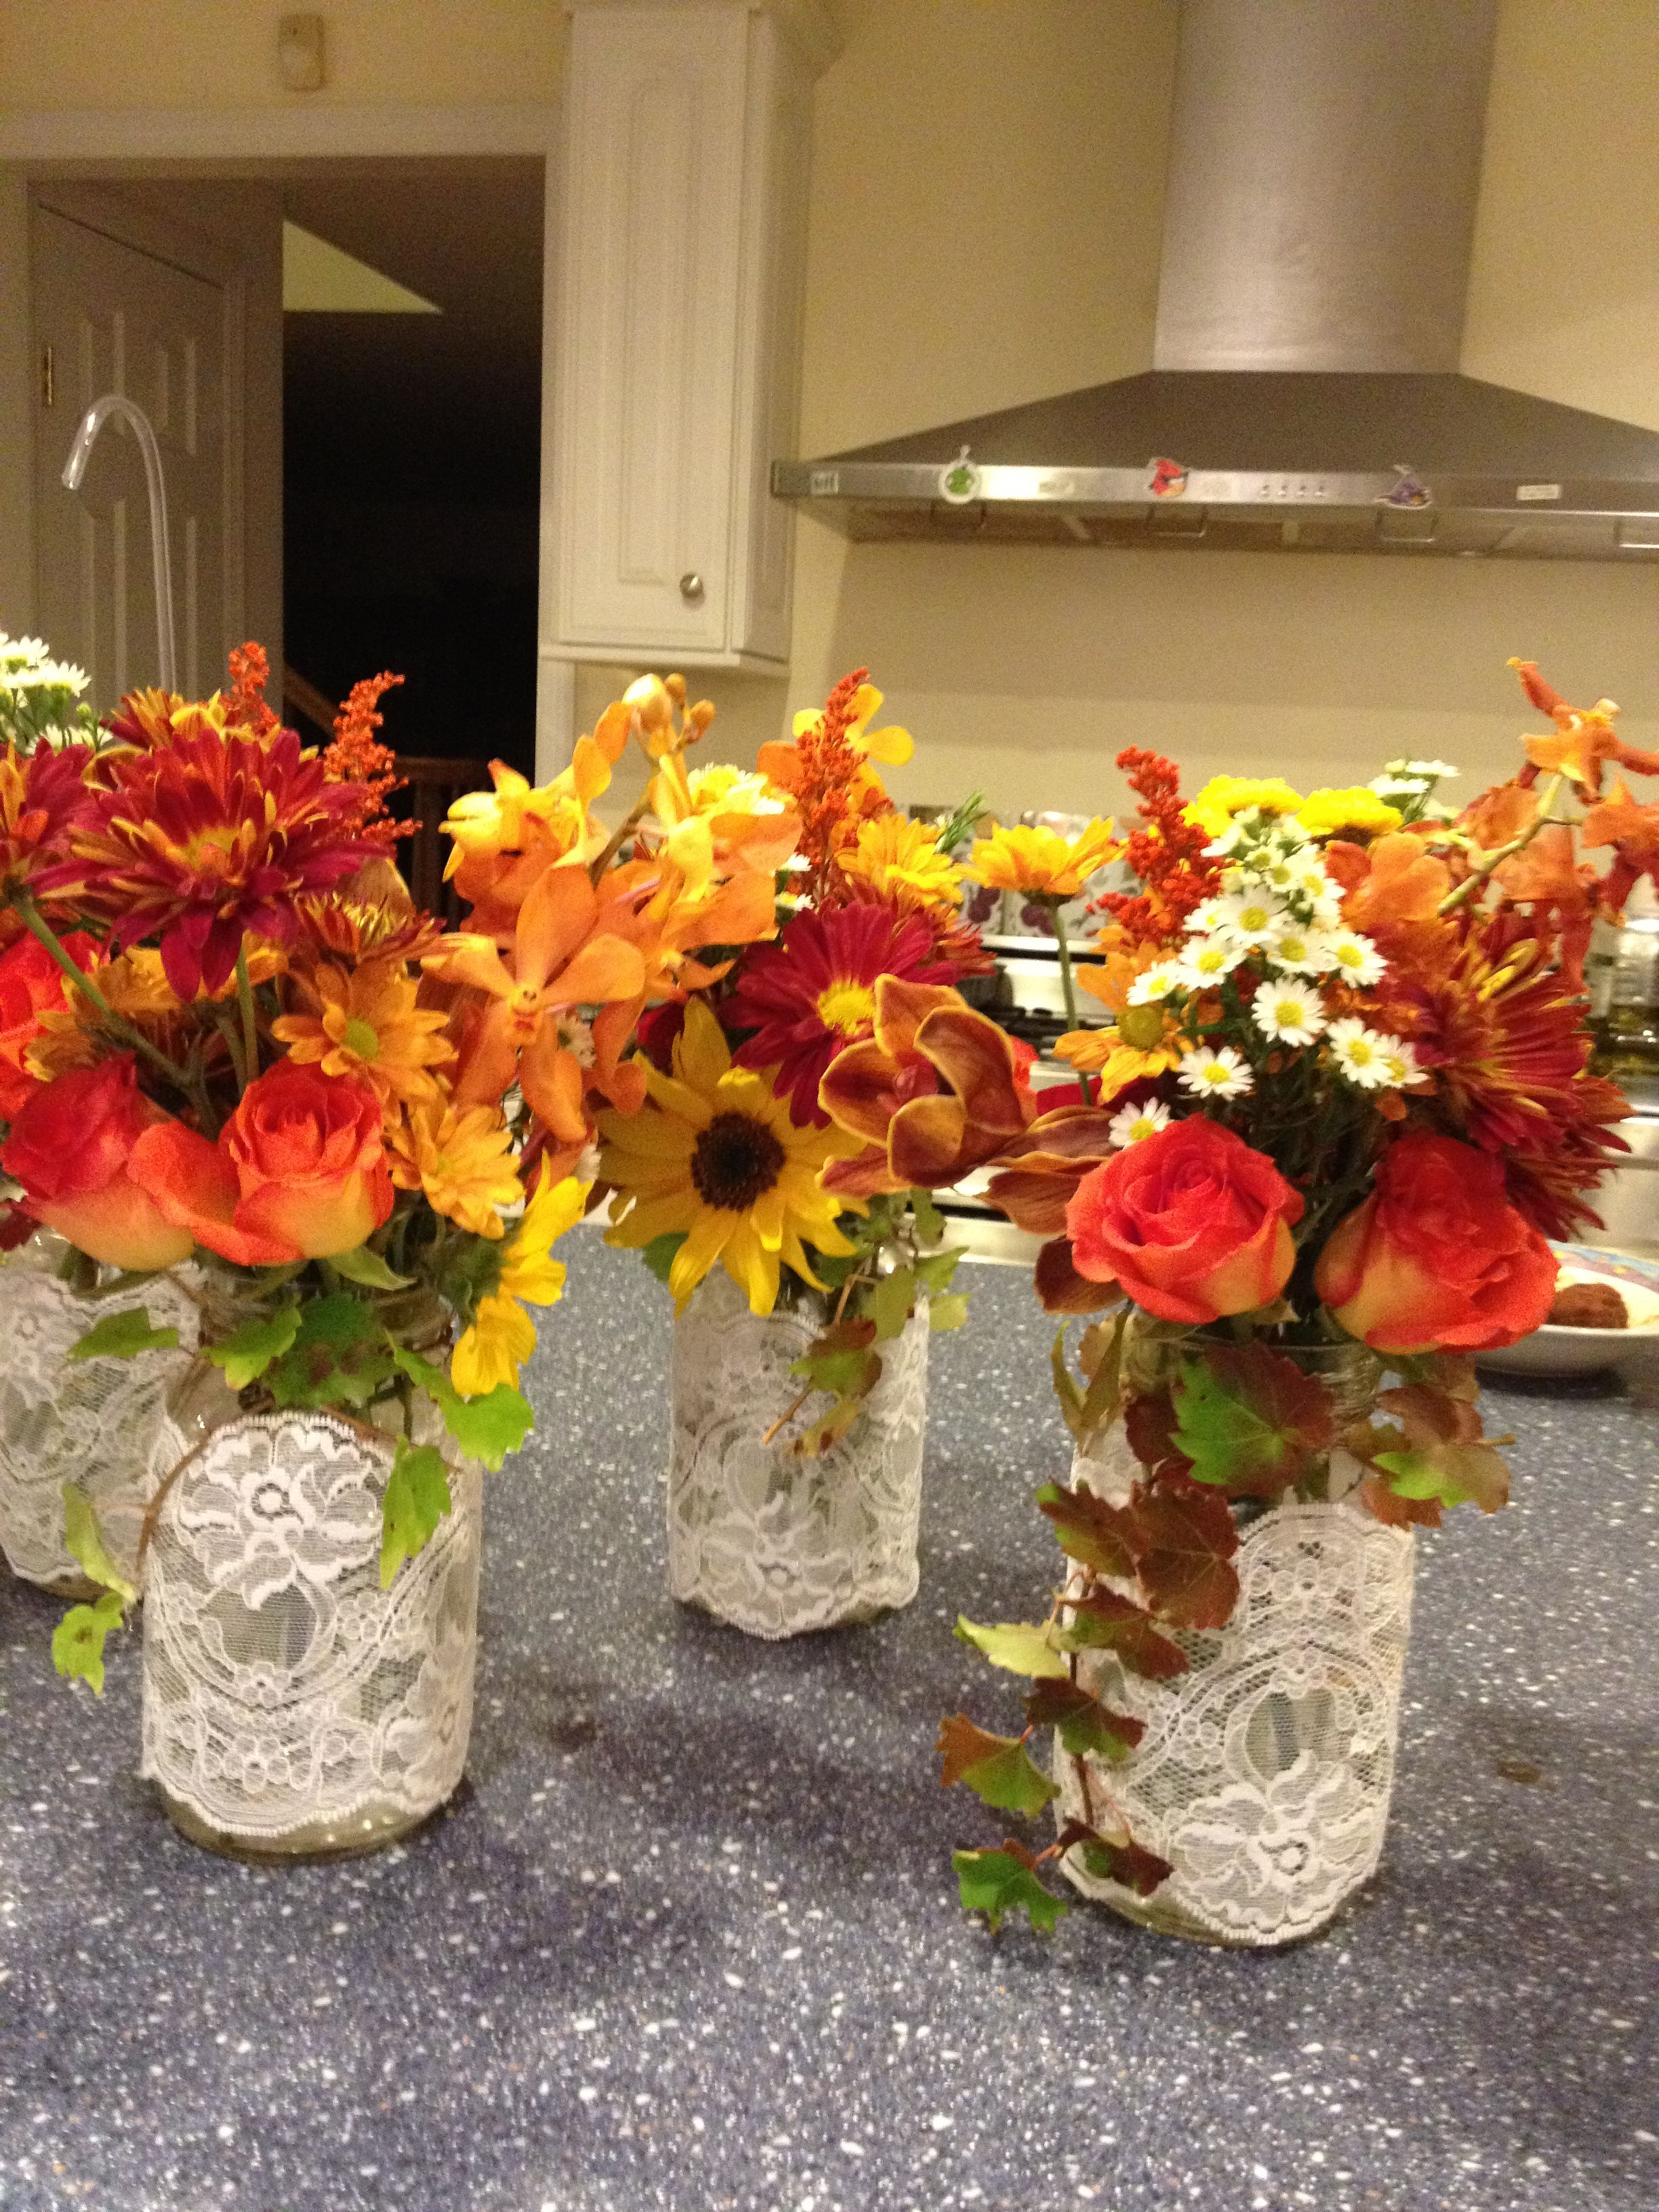 Mason jar centerpiece with fall colors and lace giving in